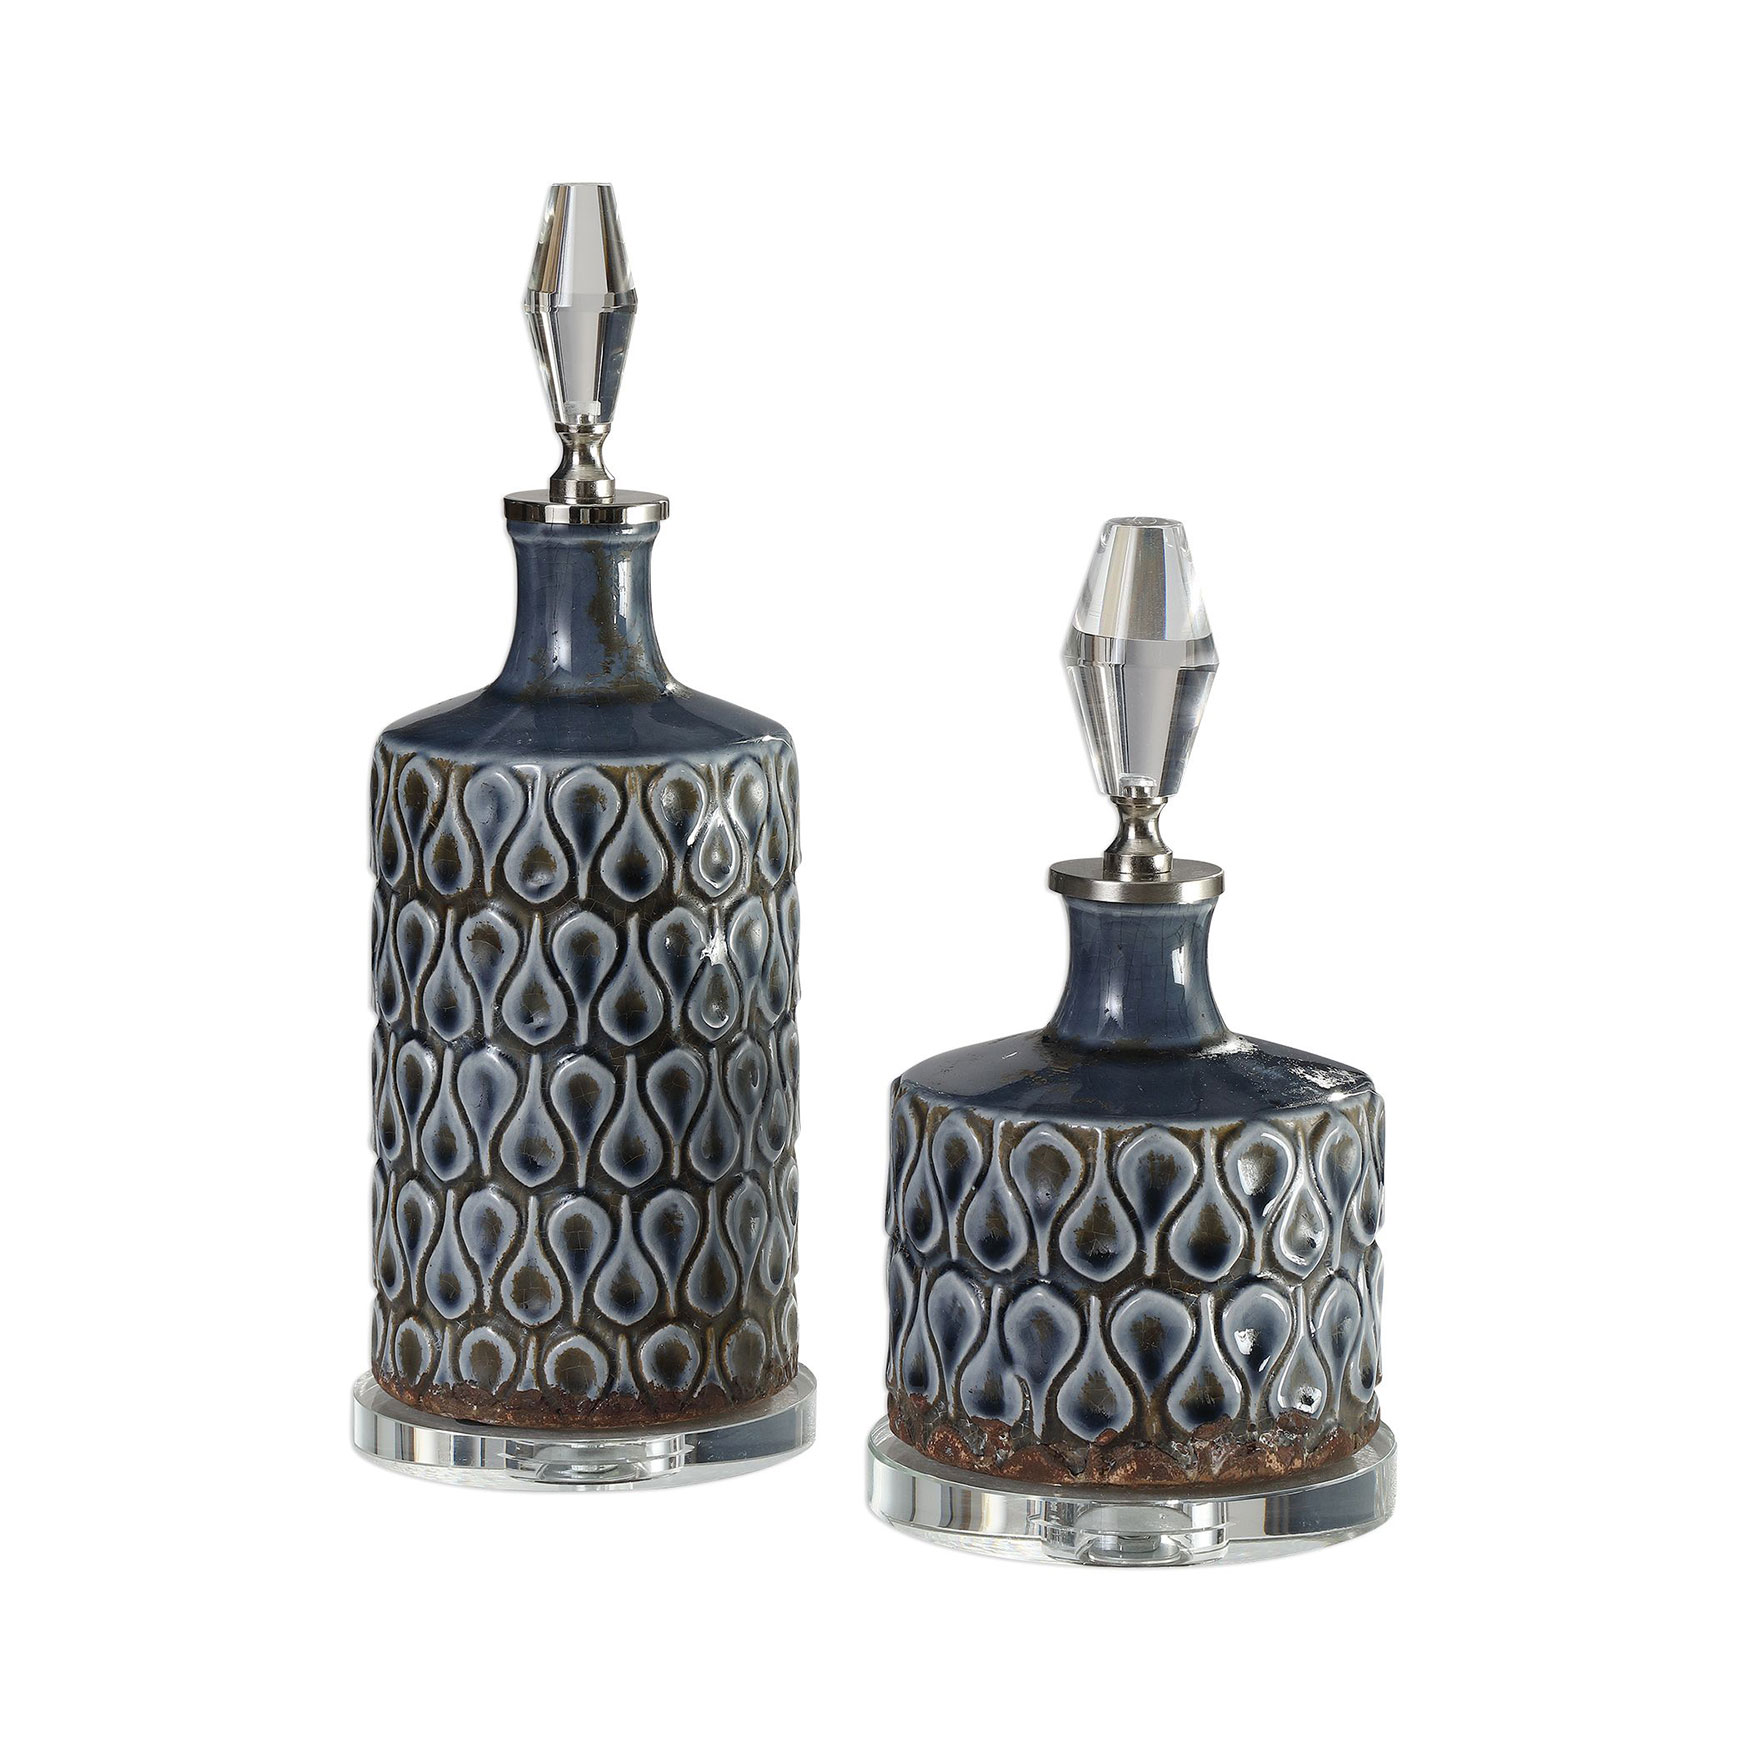 Varuna Cobalt Blue Bottles, Set of 2, COBALT BLUE